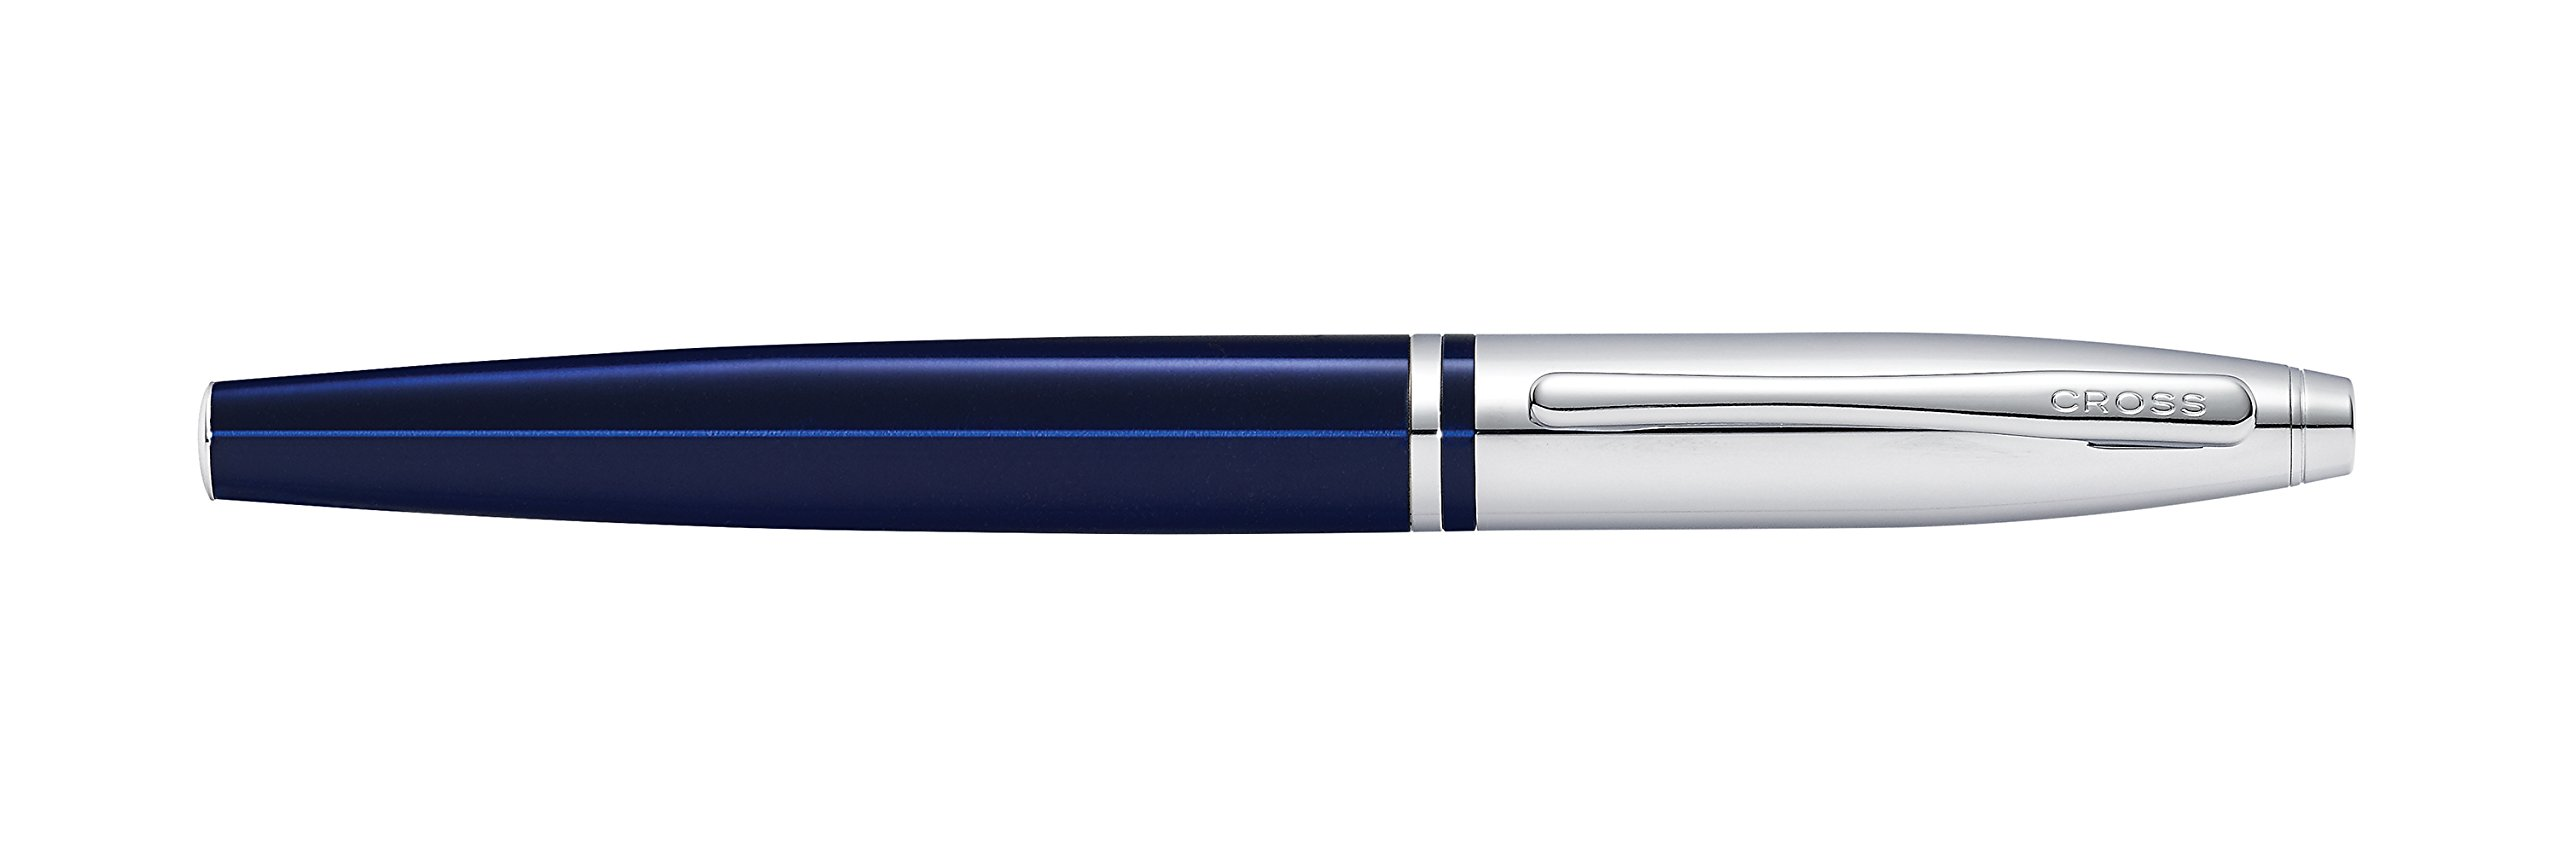 Engraved / Personalized Cross Calais 'Chrome/Blue Lacquer' Selectip Rollerball Pen with Gift Box - Custom Engraving AT0115-3 by Marketfair (Image #2)